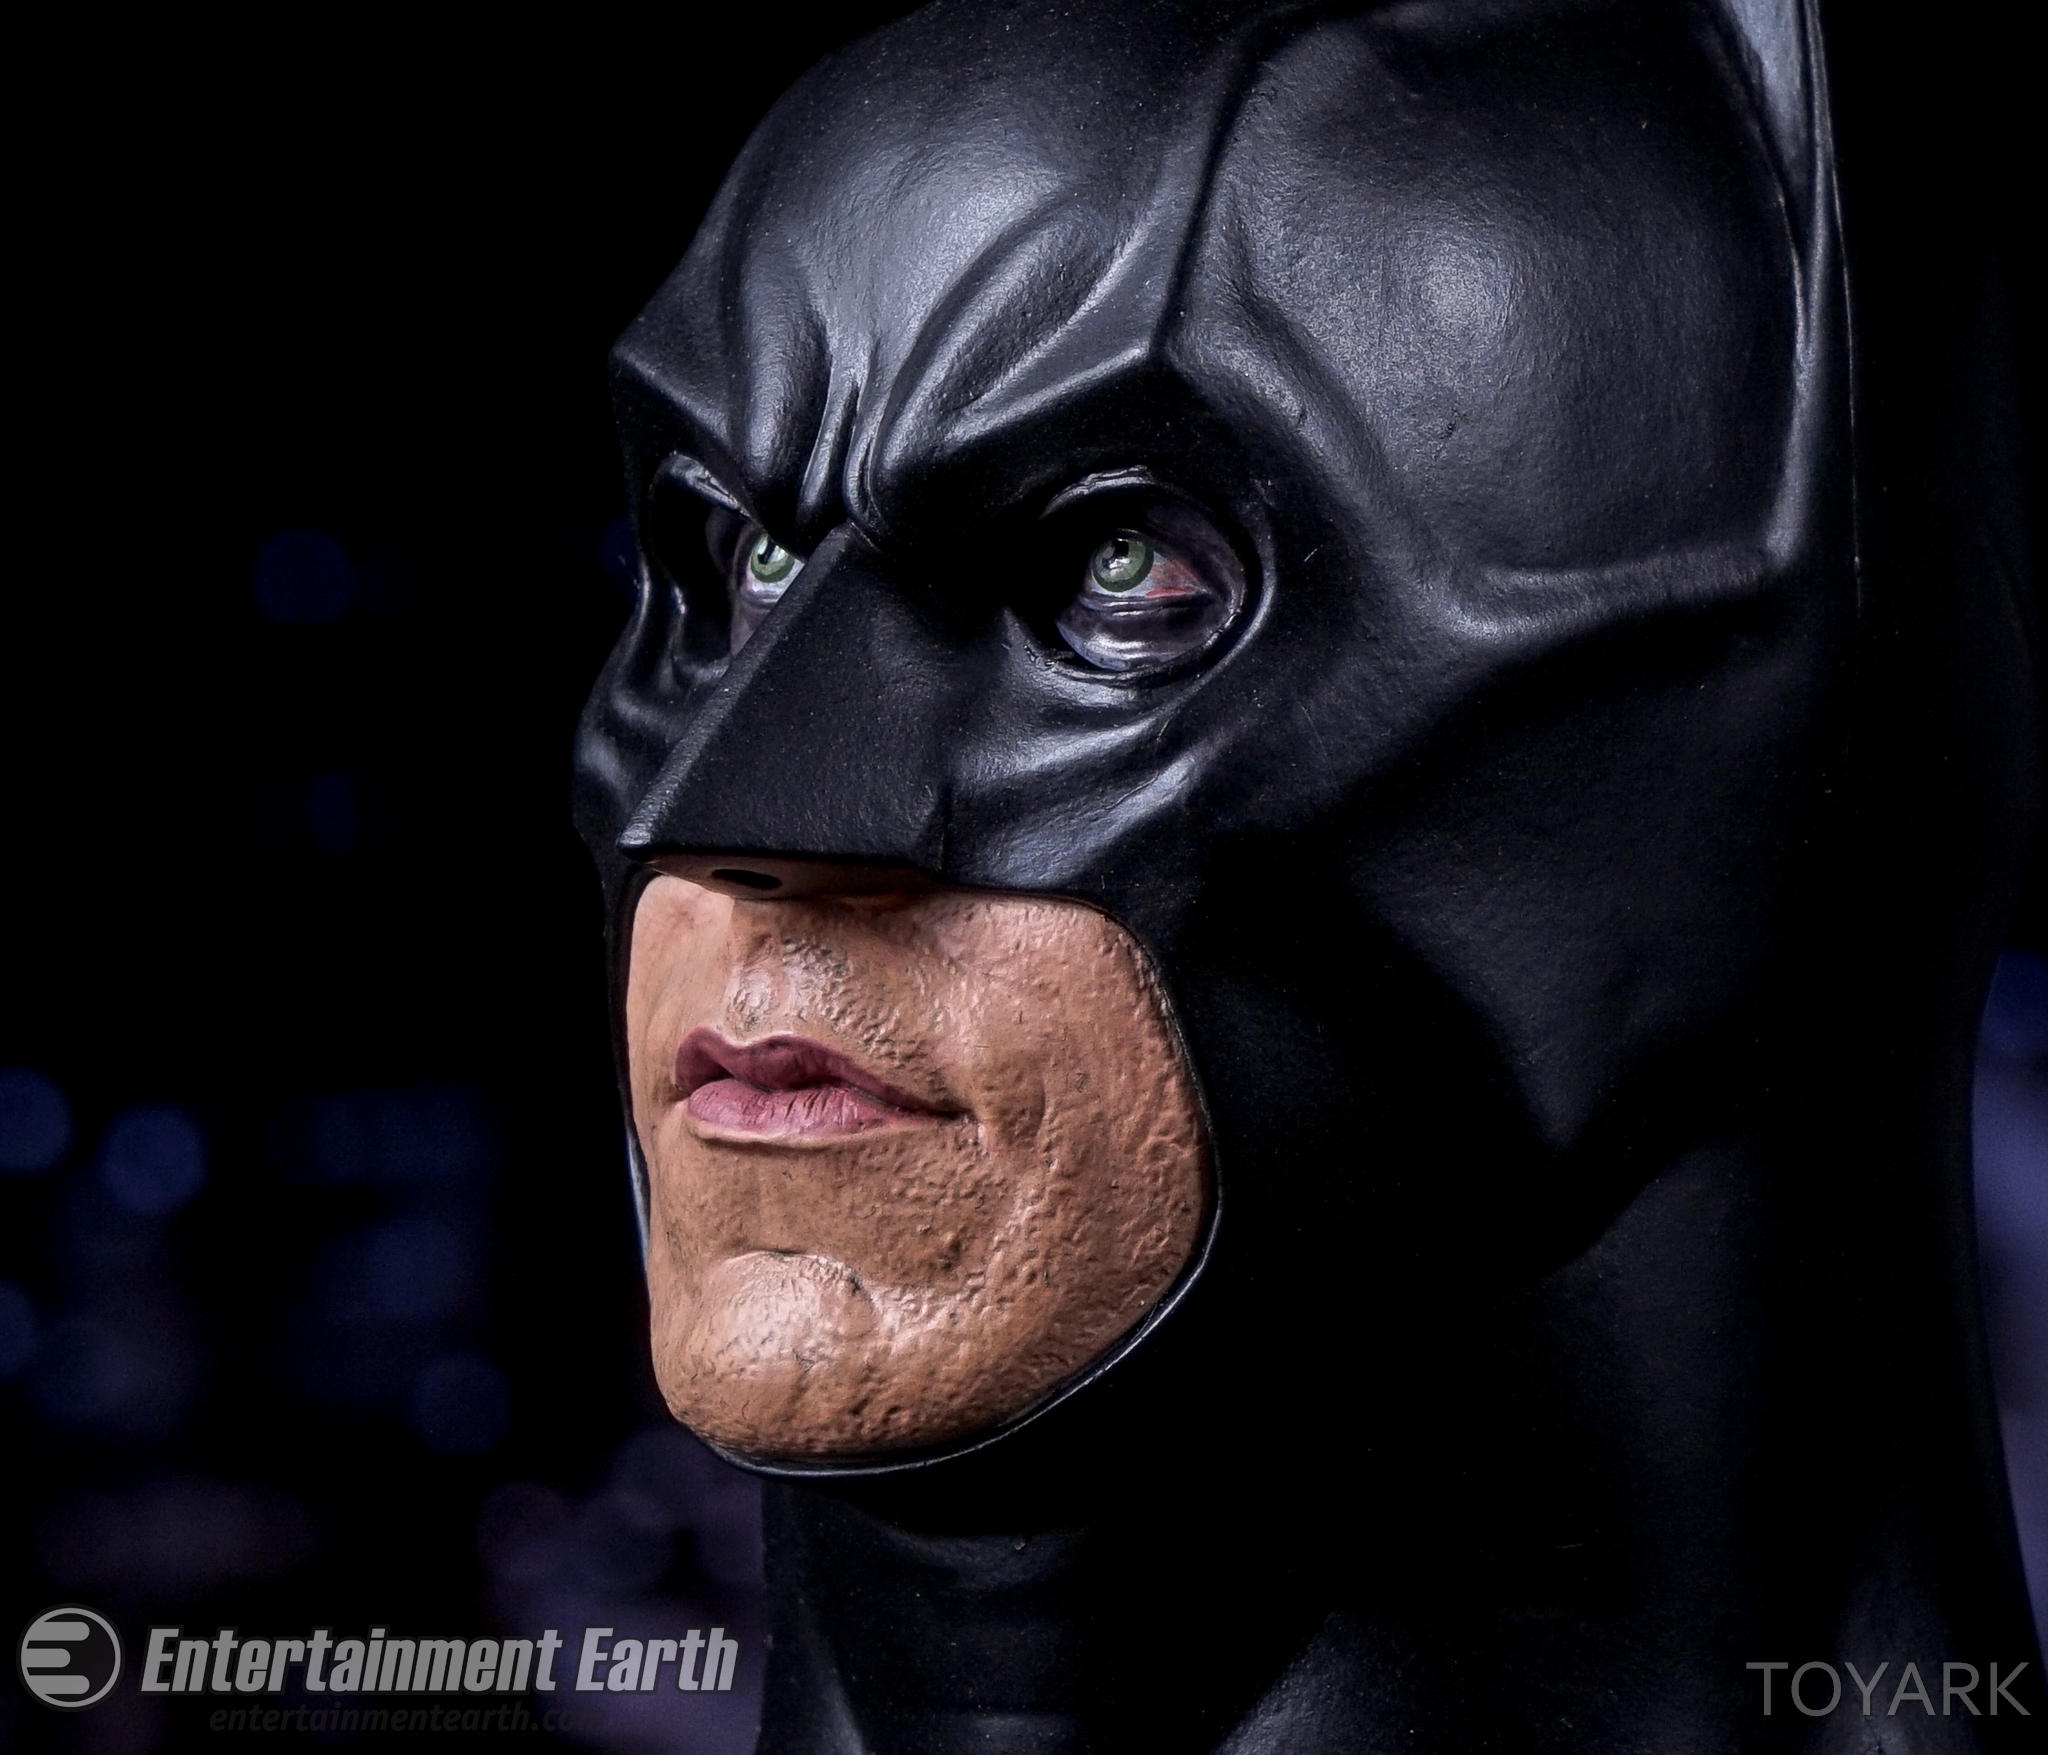 http://news.toyark.com/wp-content/uploads/sites/4/2016/07/NECA-Batman-Begins-059.jpg